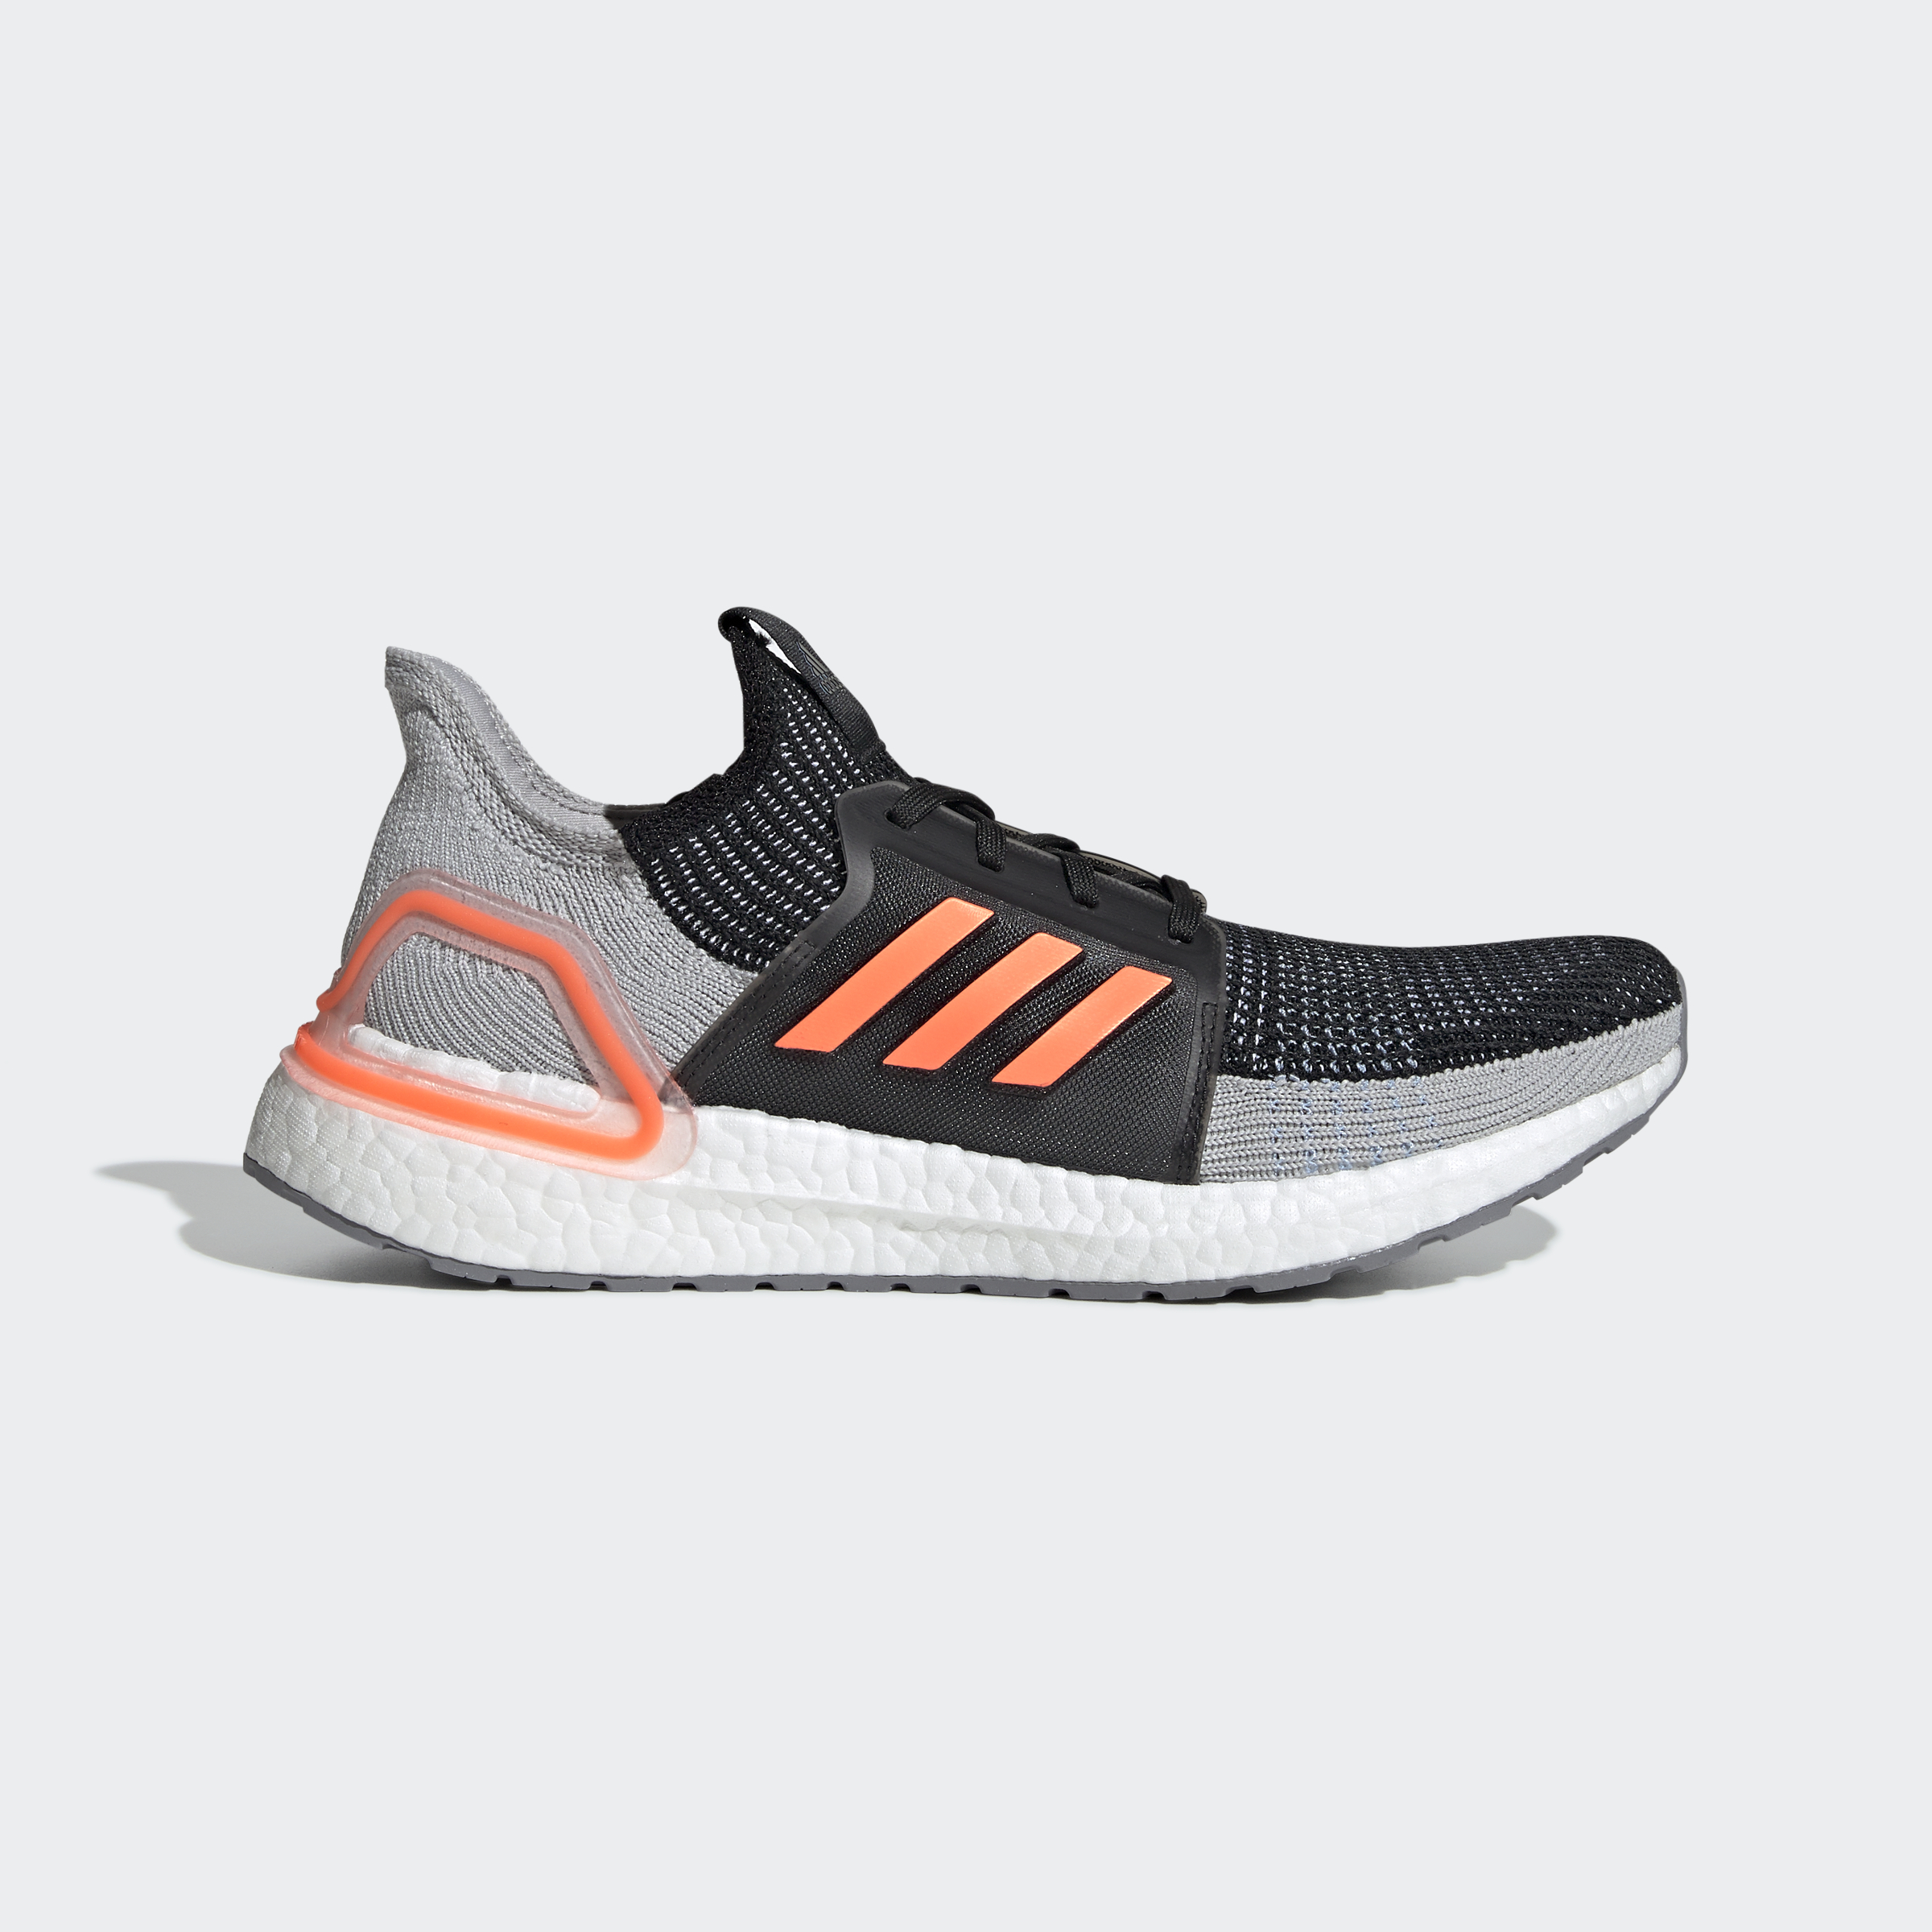 adidas-Ultraboost-19-Shoes-Athletic-amp-Sneakers thumbnail 124